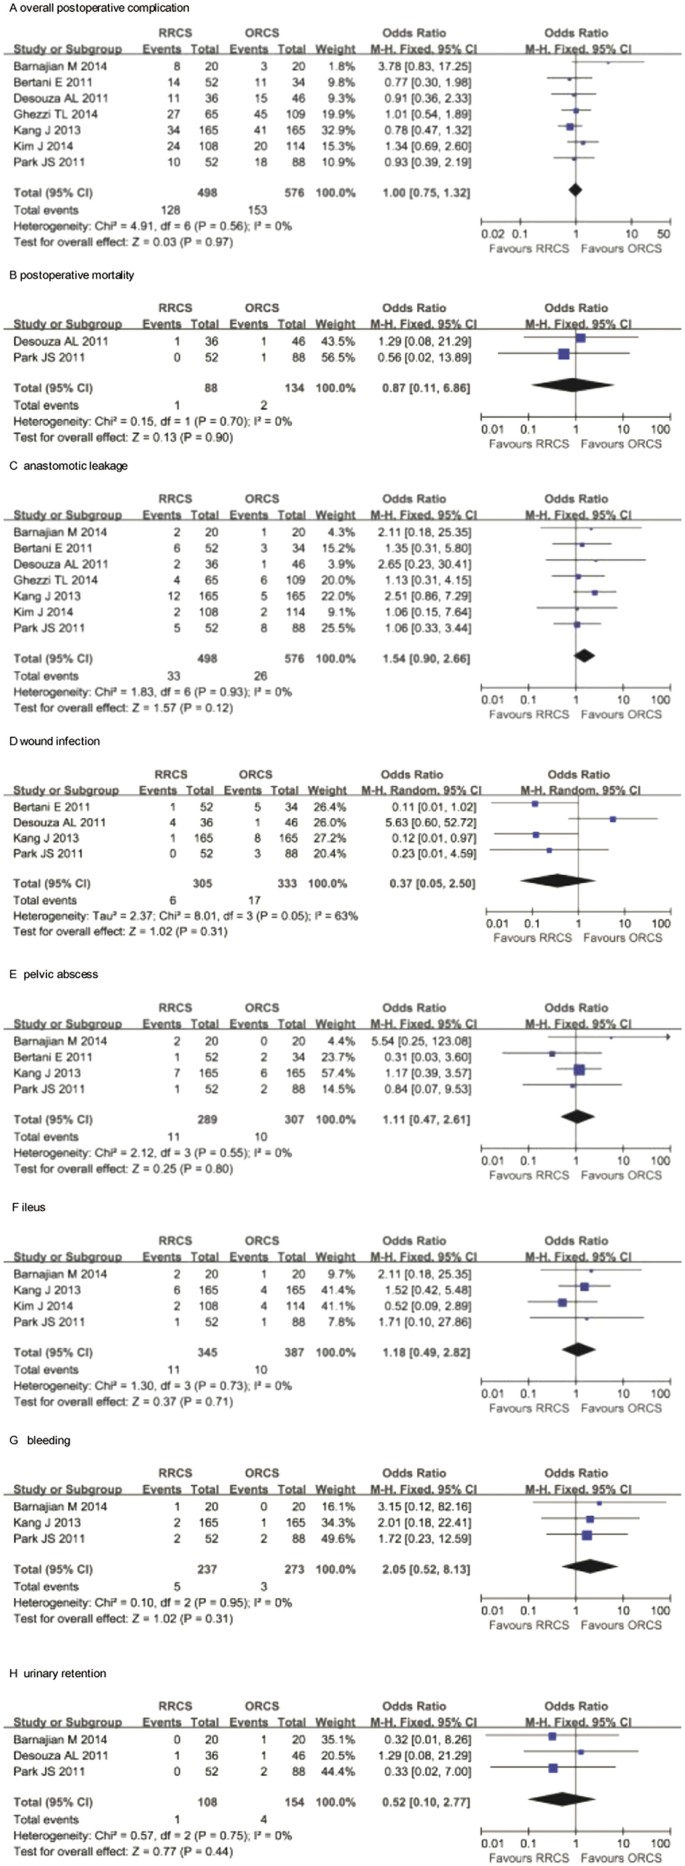 Robotic Assisted Surgery Versus Open Surgery In The Treatment Of Rectal Cancer The Current Evidence Scientific Reports